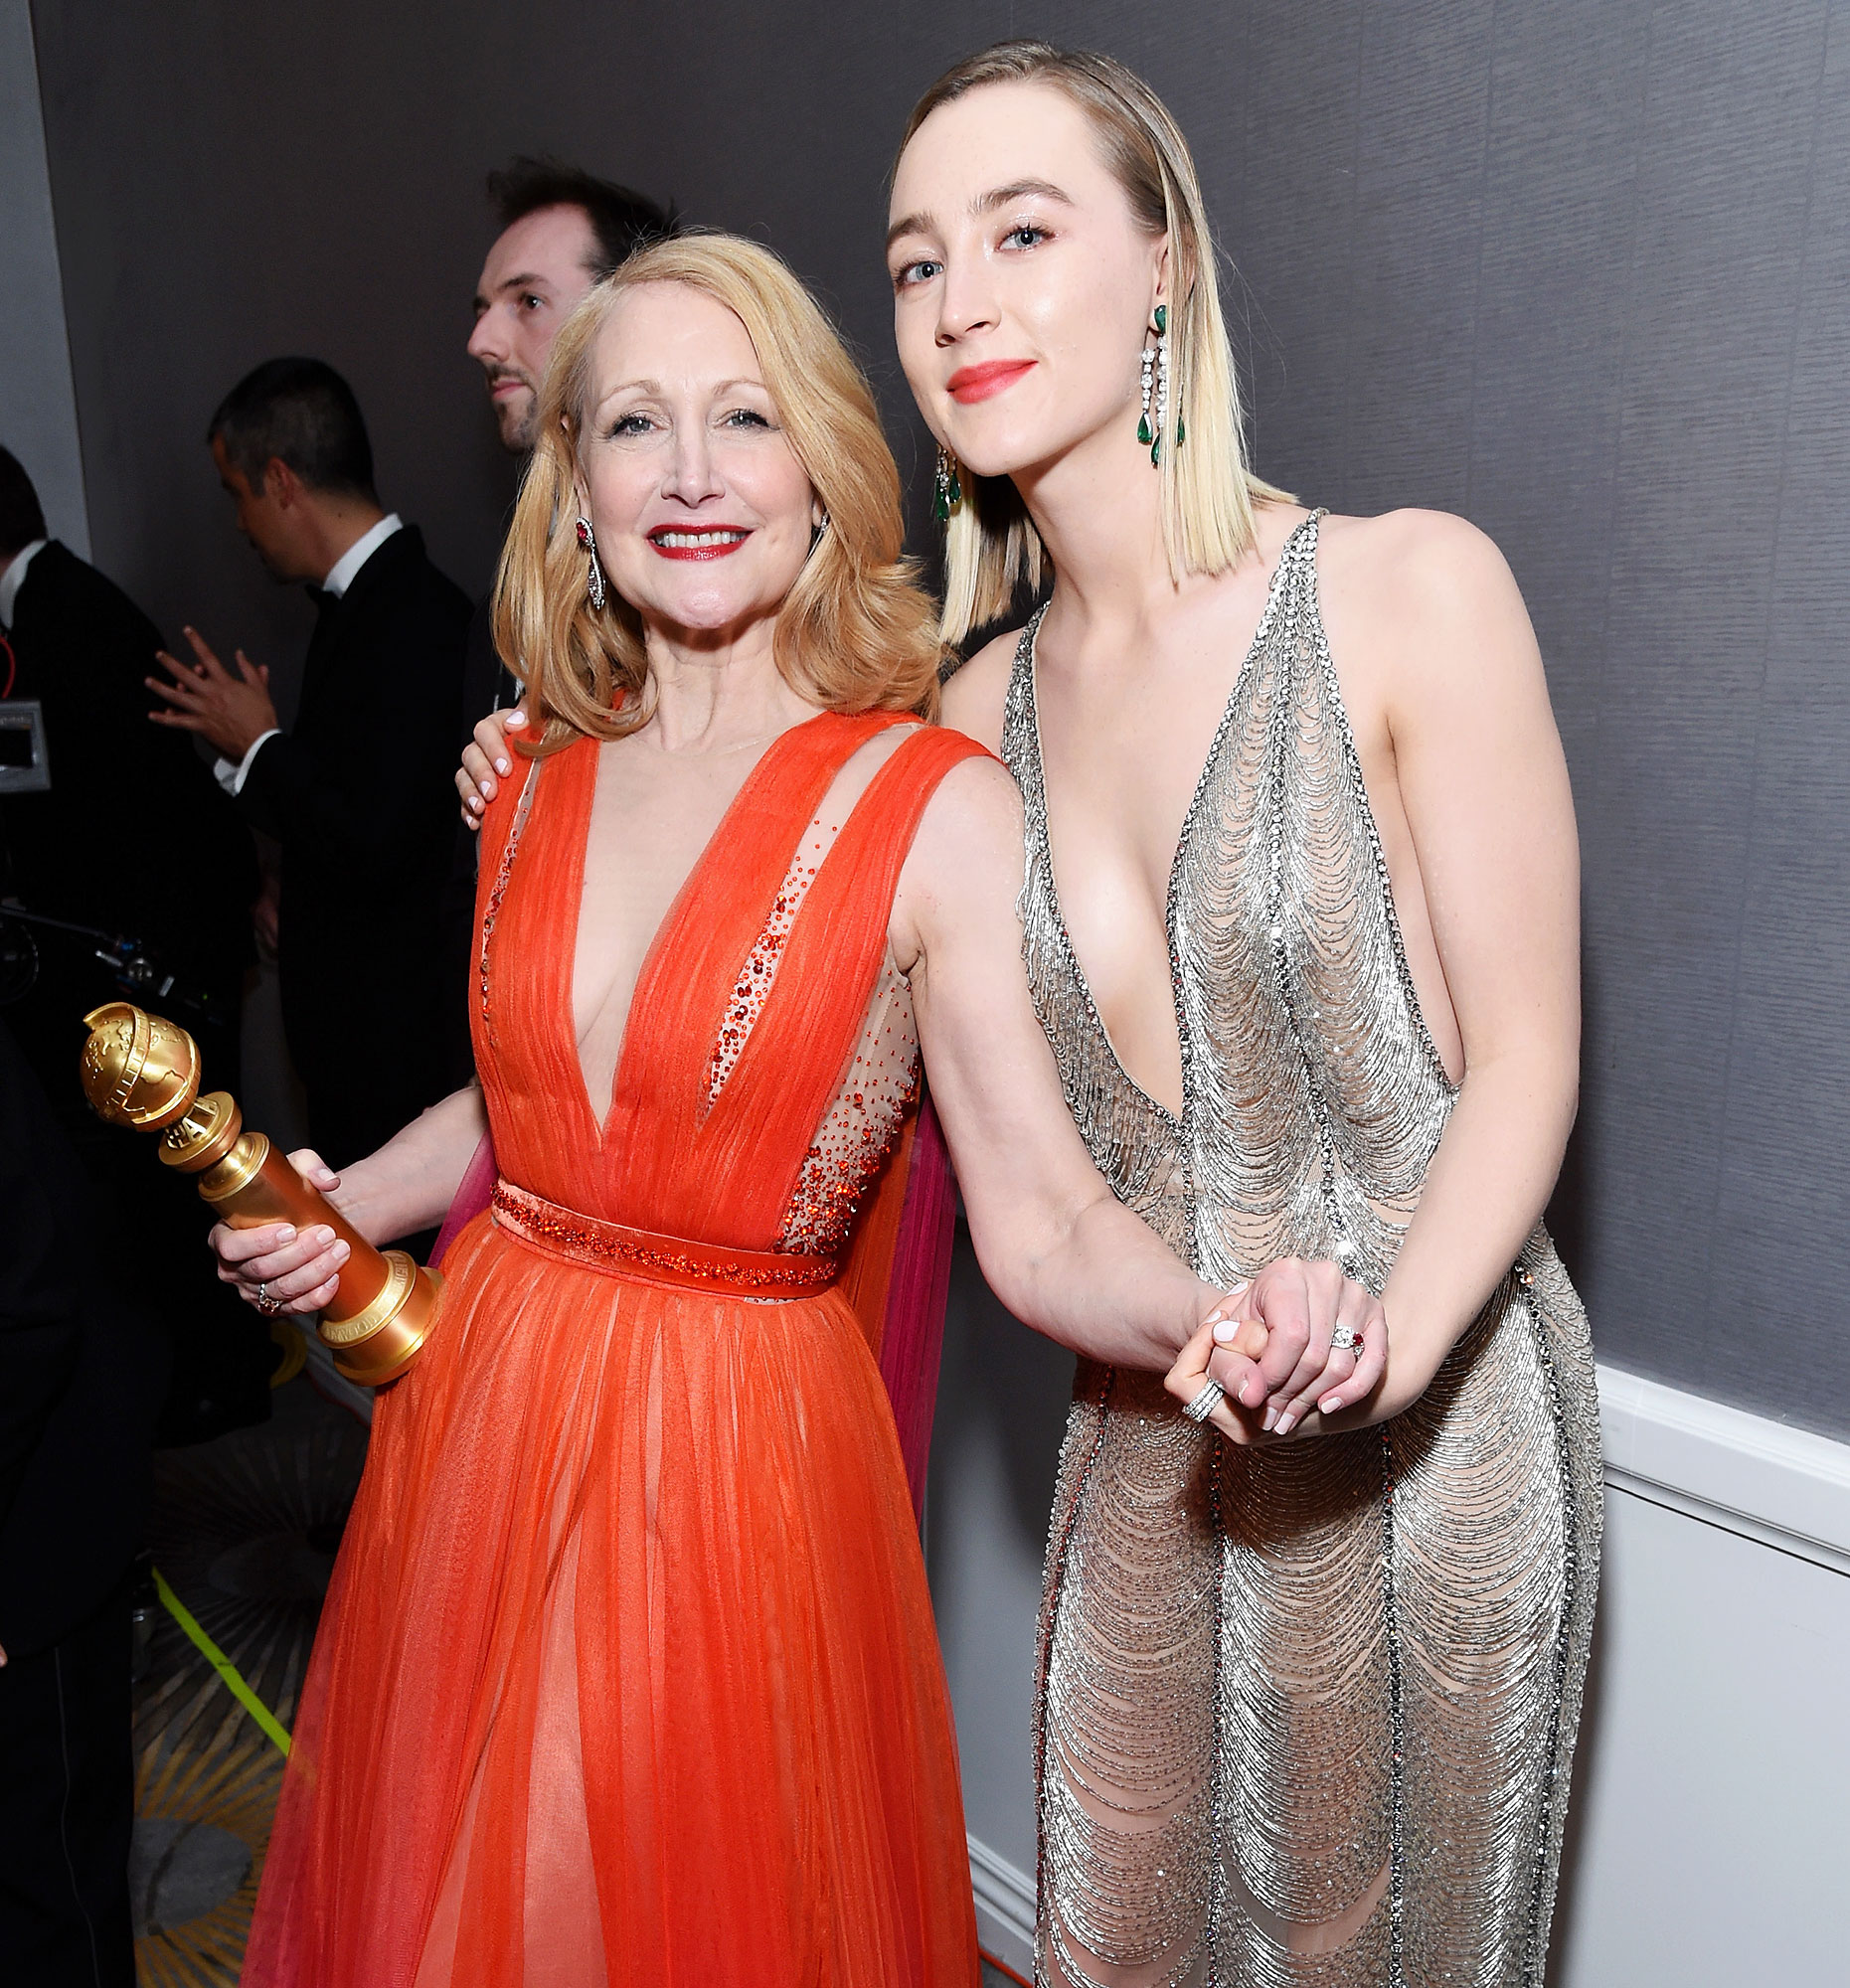 Inside Golden Globes 2019 Patricia Clarkson Saoirse Ronan - Patricia Clarkson and Saoirse Ronan could have passed for a mother-daughter duo as they posed together backstage.